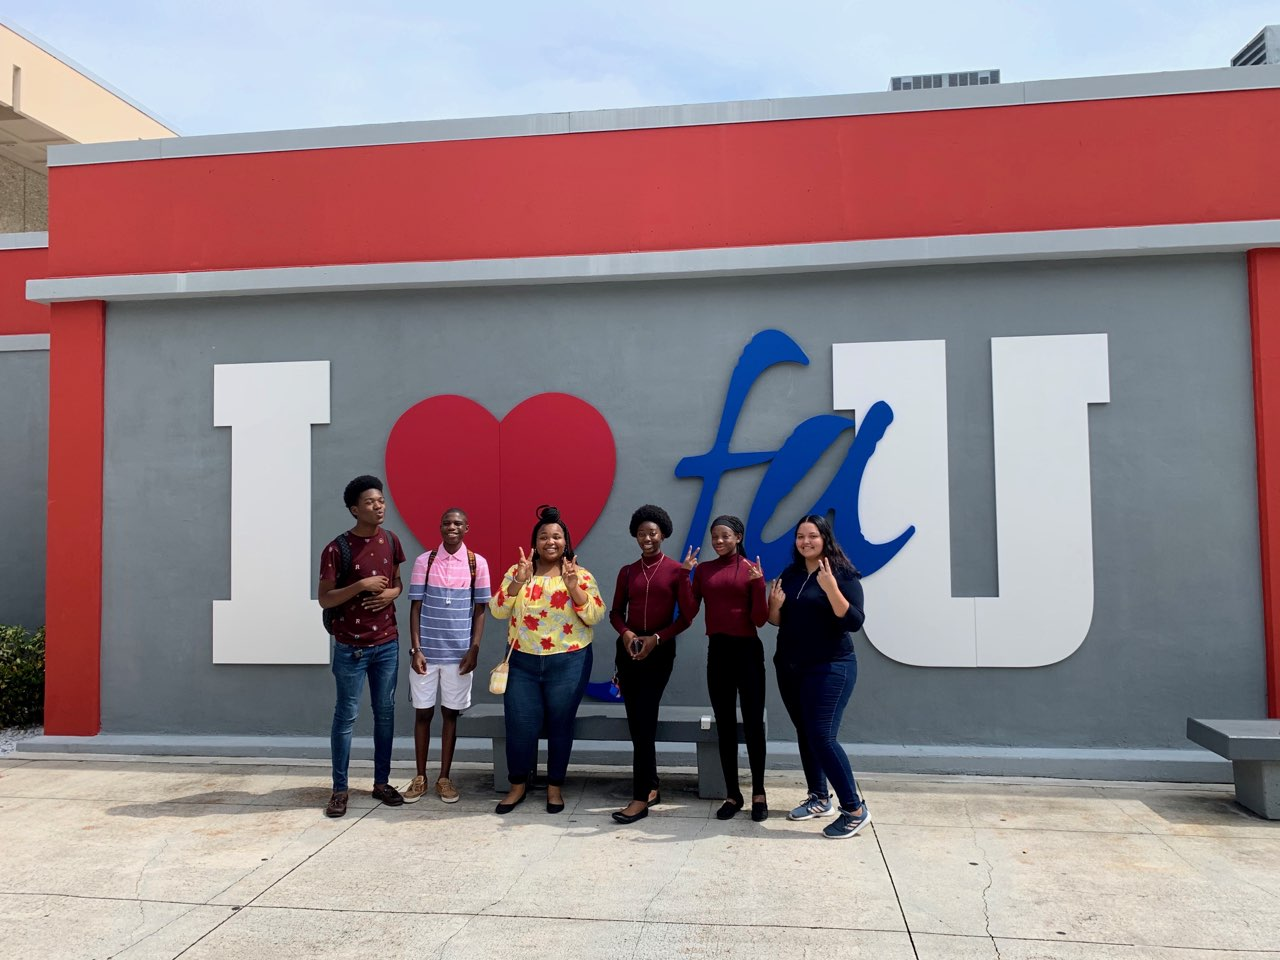 Group of 6 students in front of I love FAU sign